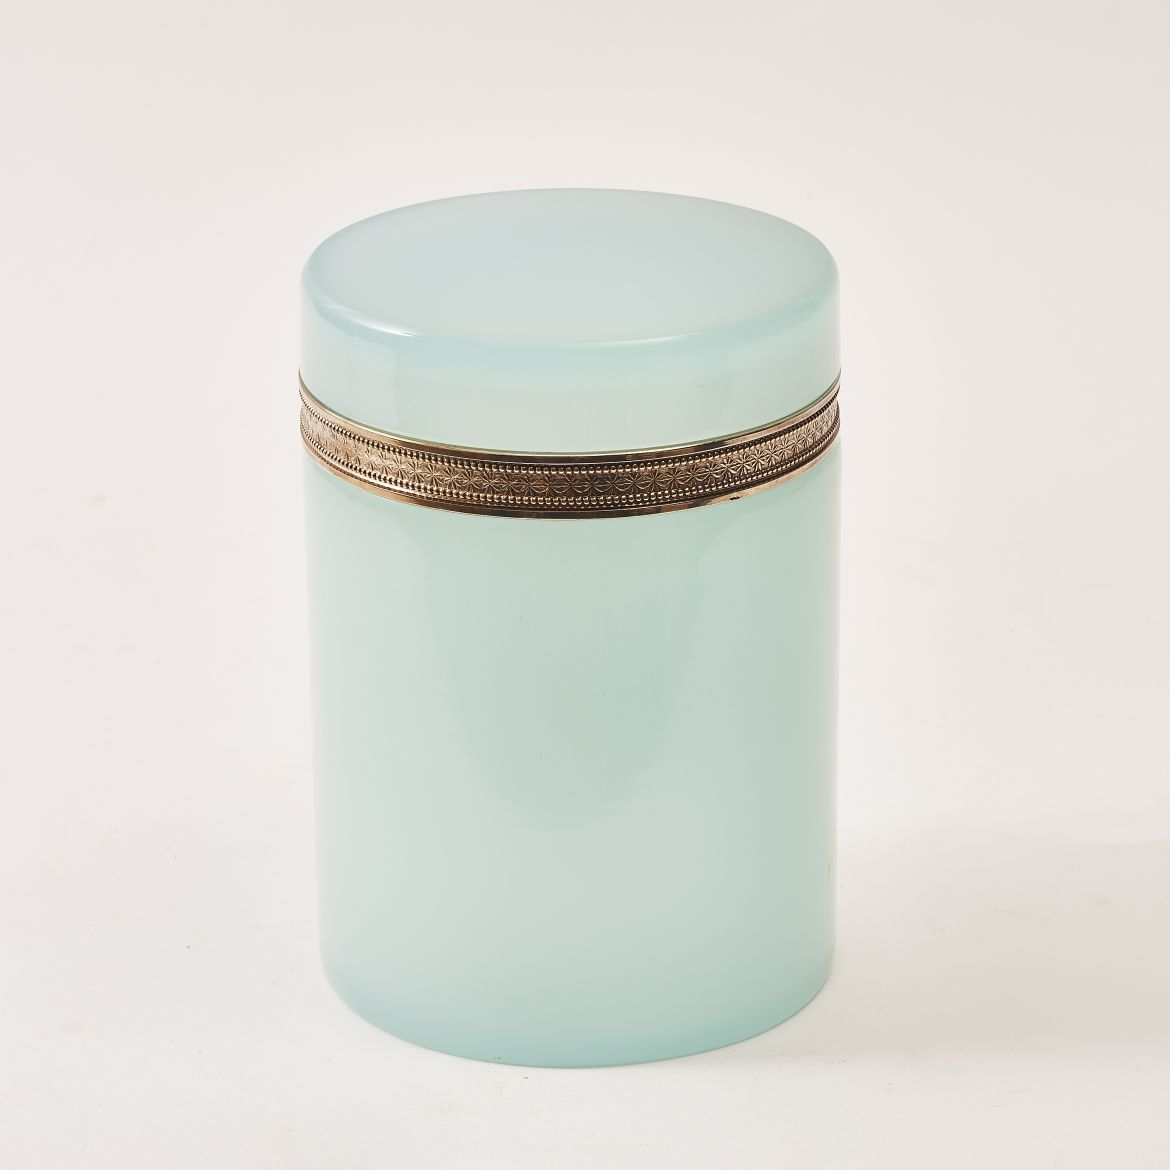 Pale Blue Cylindrical Casket